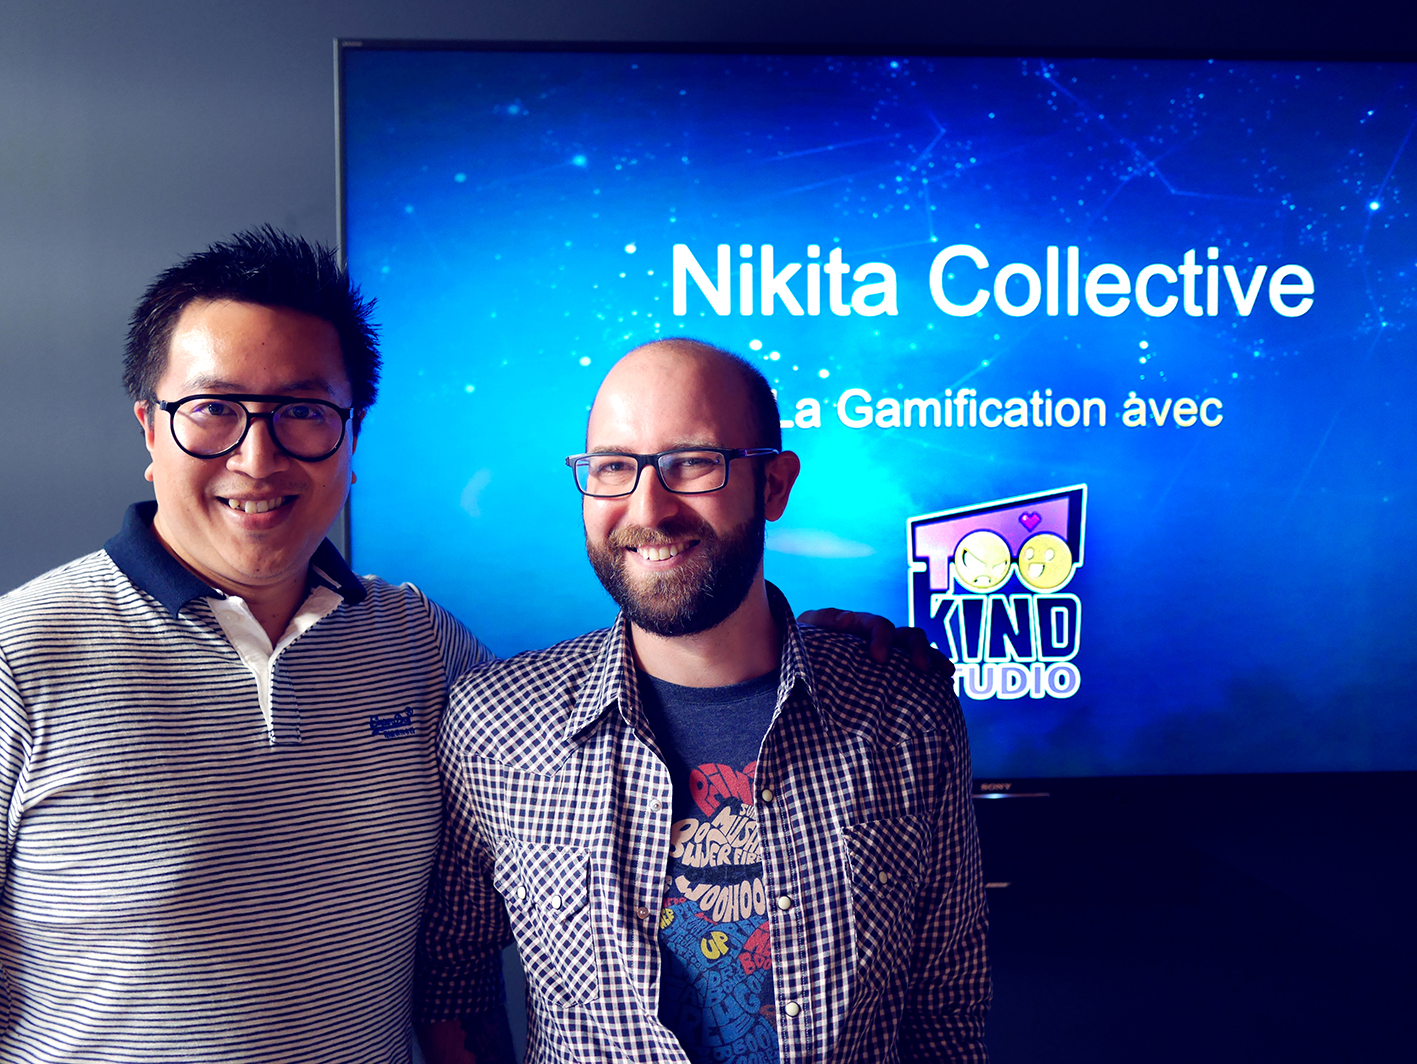 Gamification avec Too Kind Studio